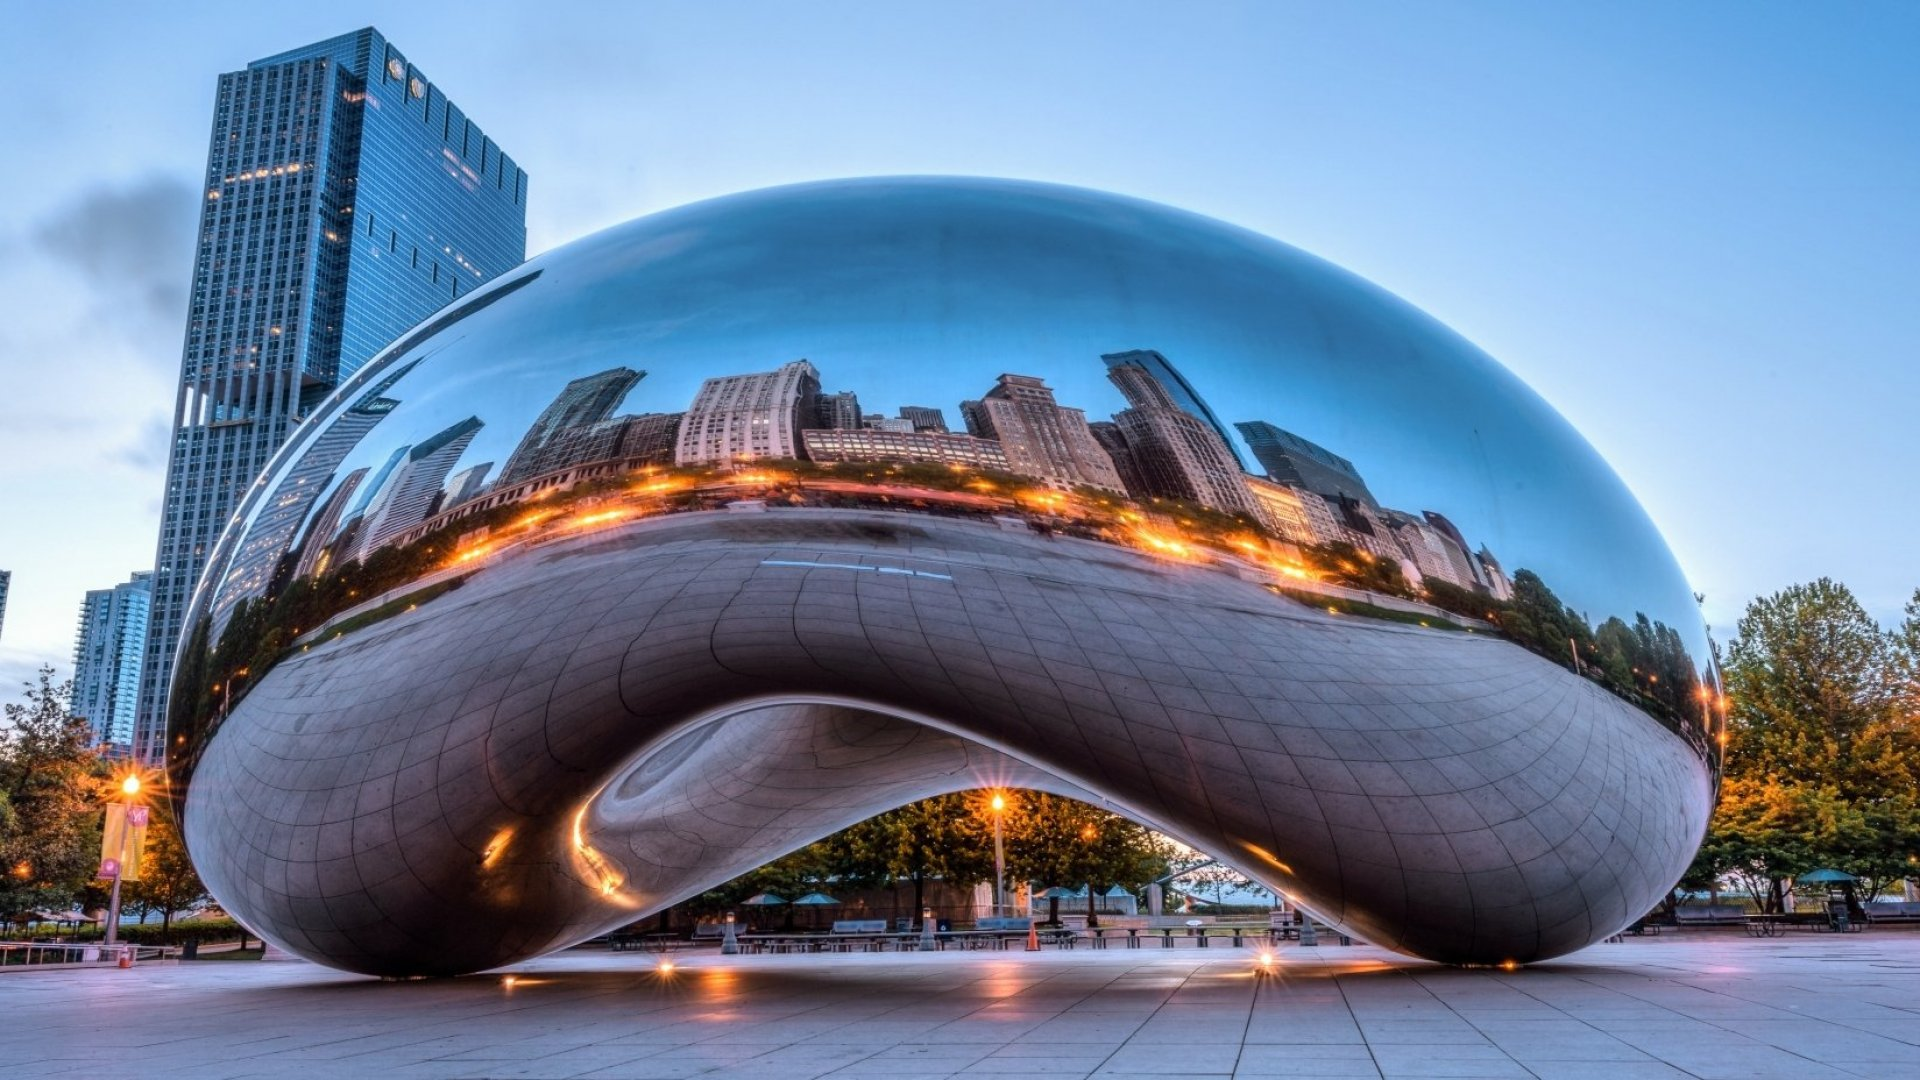 Chicago's Cloud Gate.